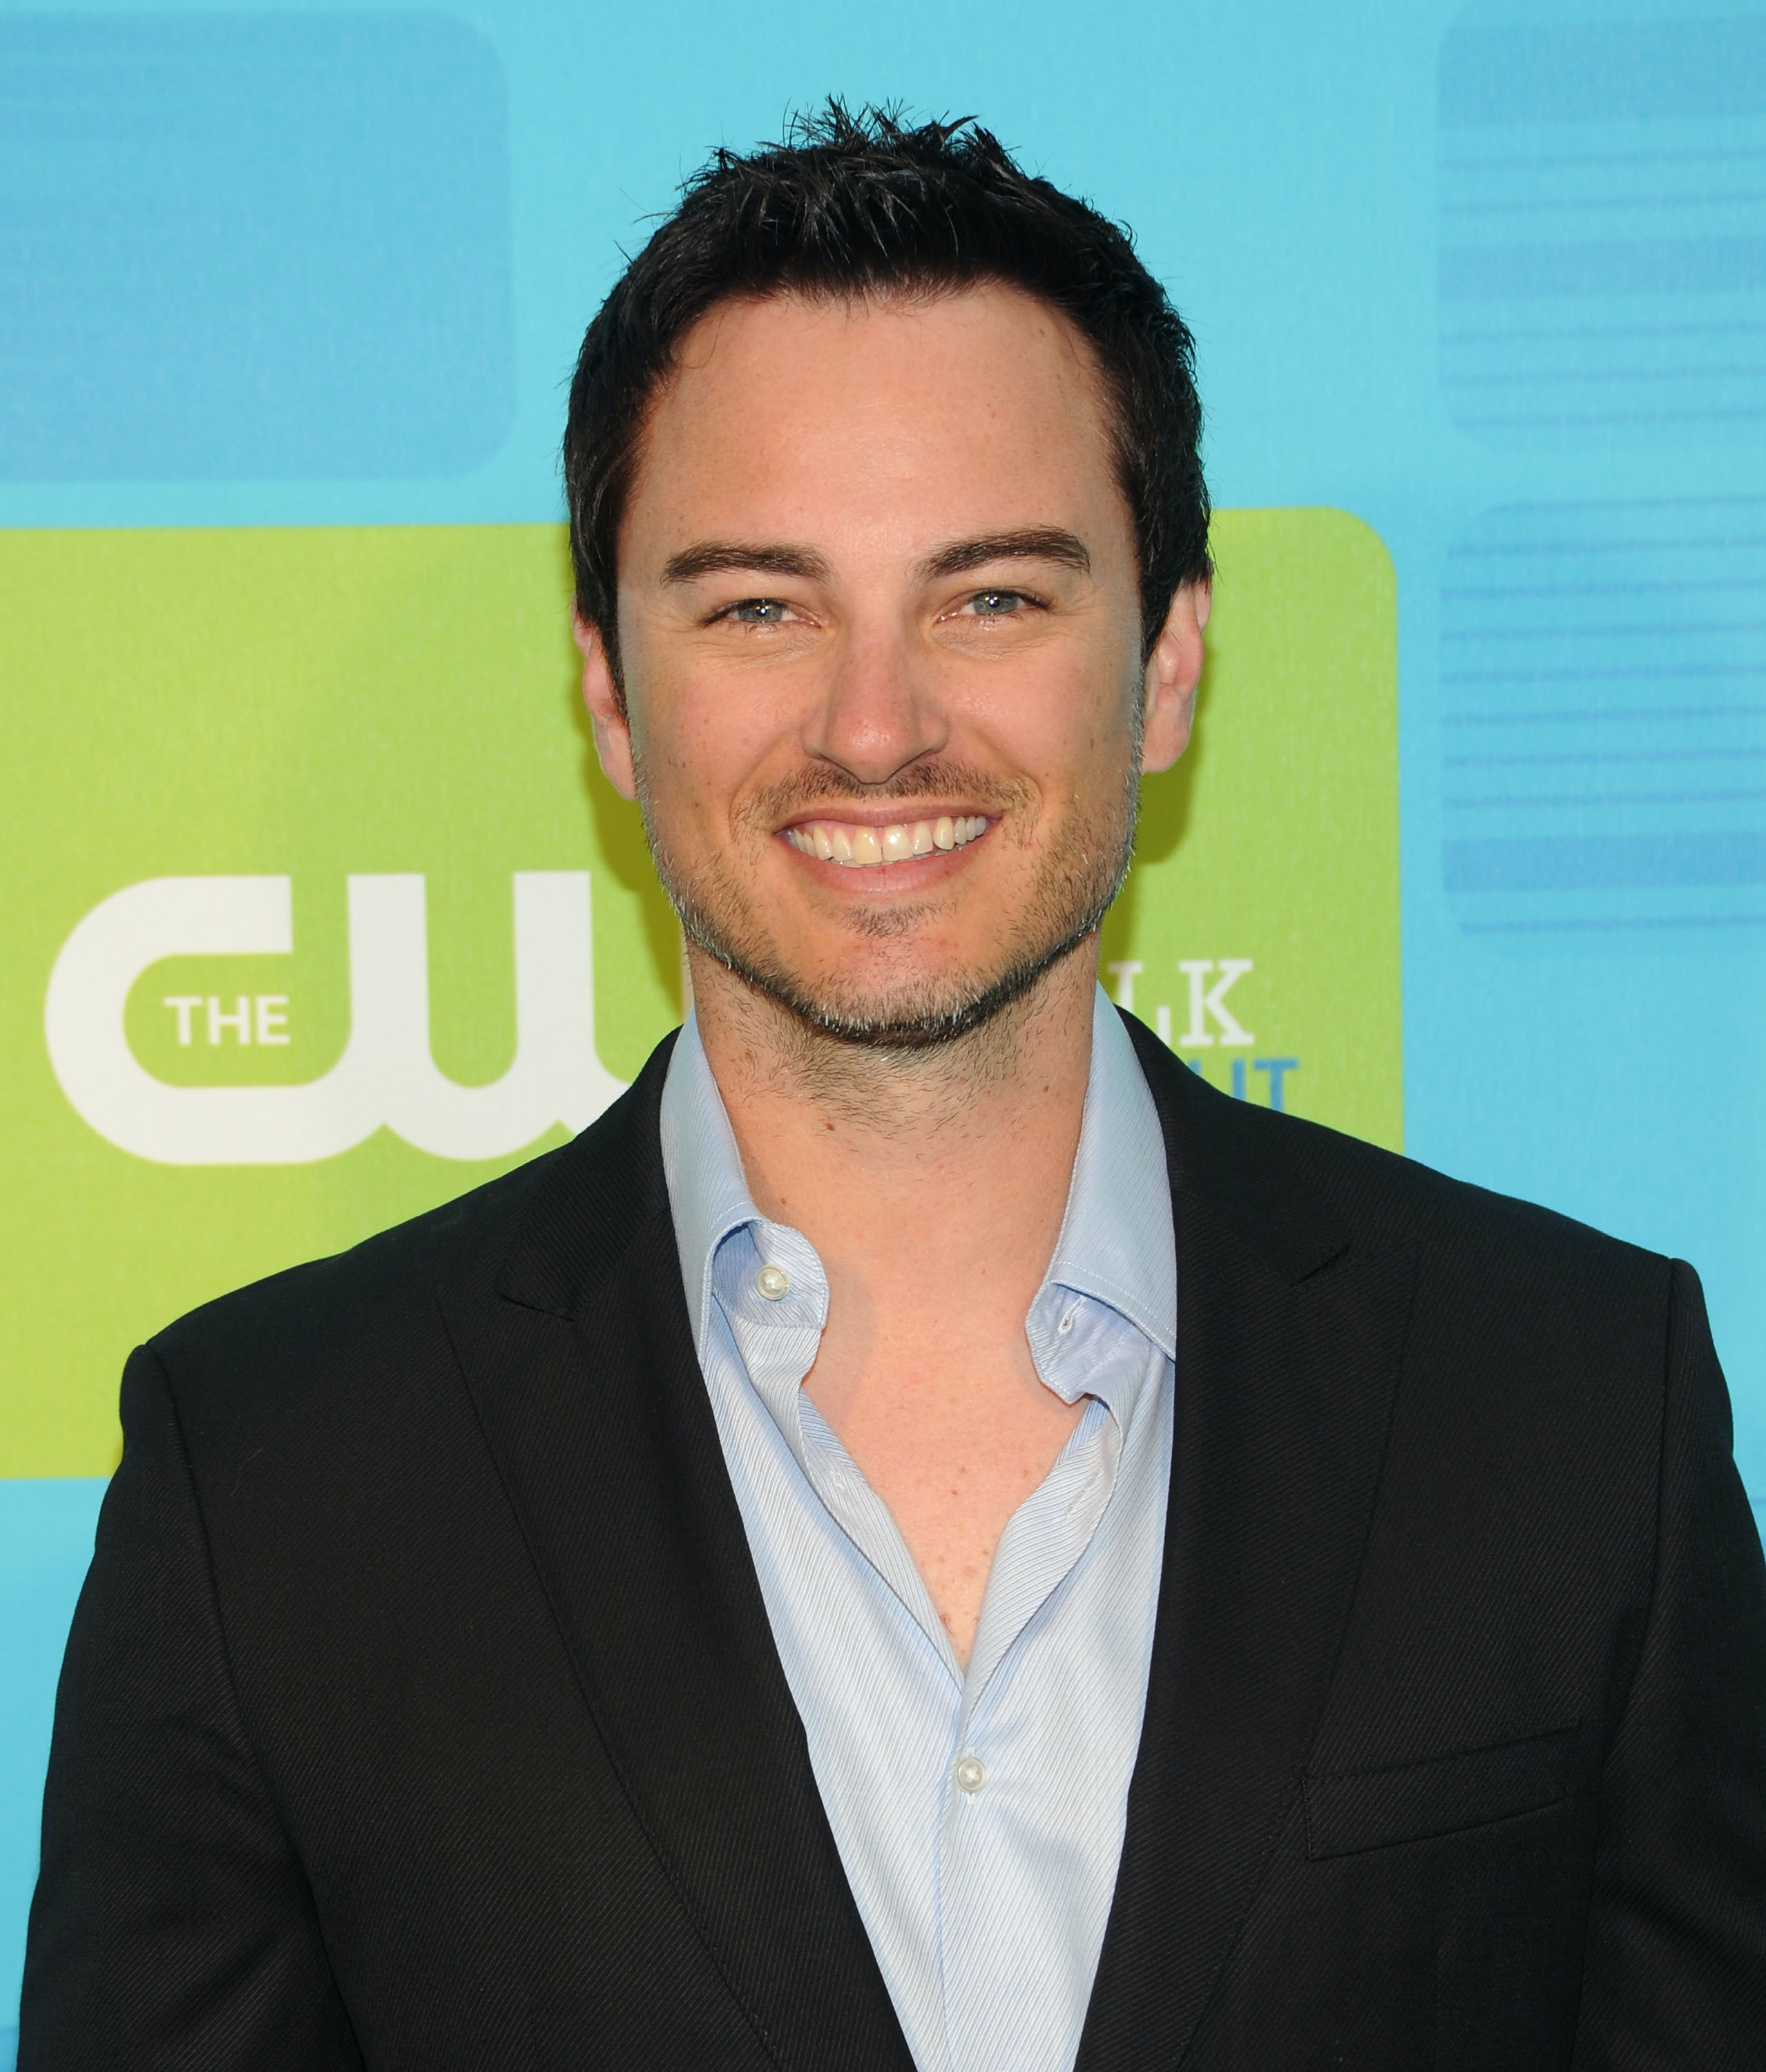 Kerr Smith s The Fosters Character is Still a Mystery But Here s